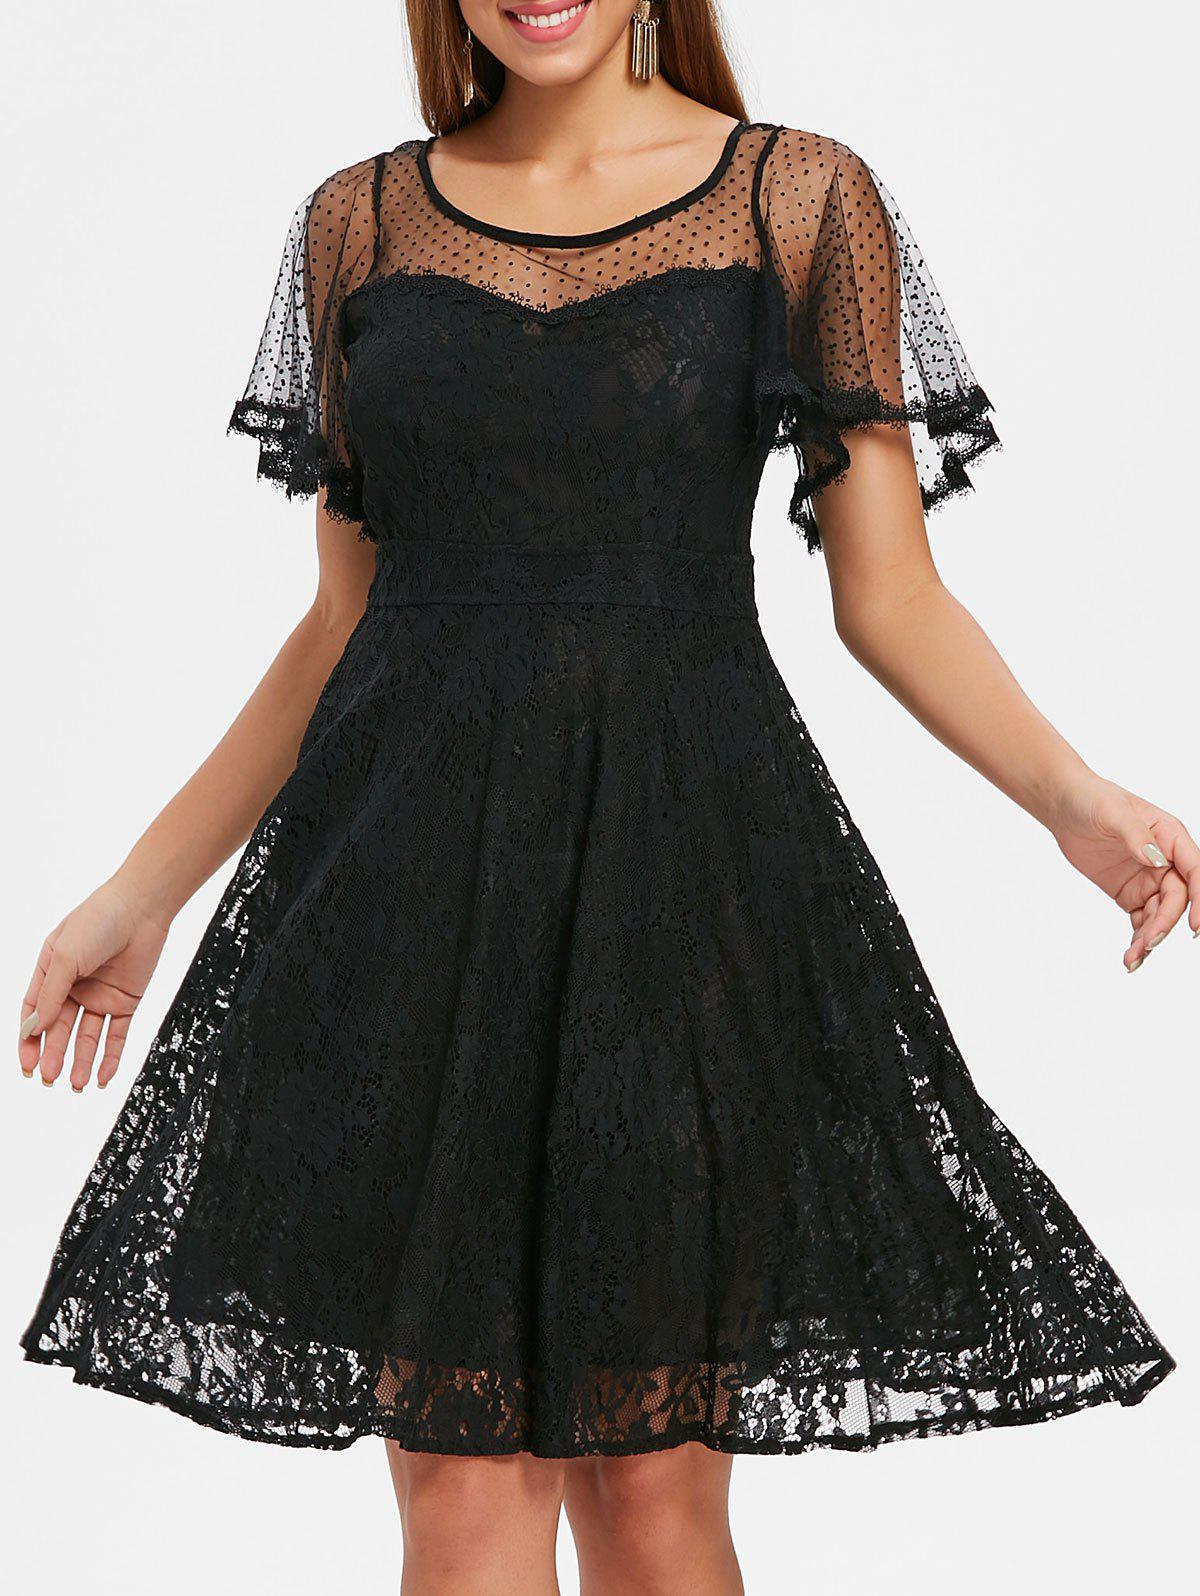 Shops Polka Dot Lace Midi Dress